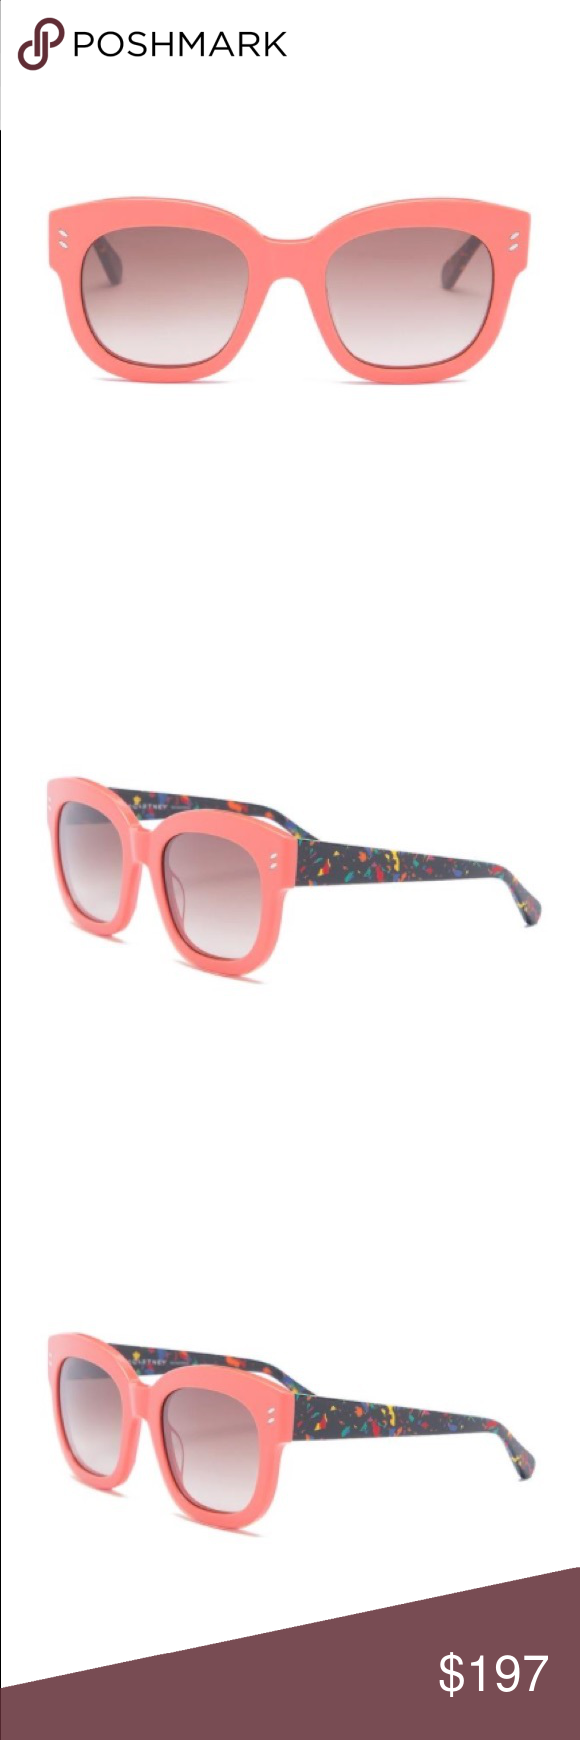 d6292c422f Stella McCartney Peach Cat Eye Square Sunglasses Details Stella McCartney s  cat-eye sunglasses are crafted